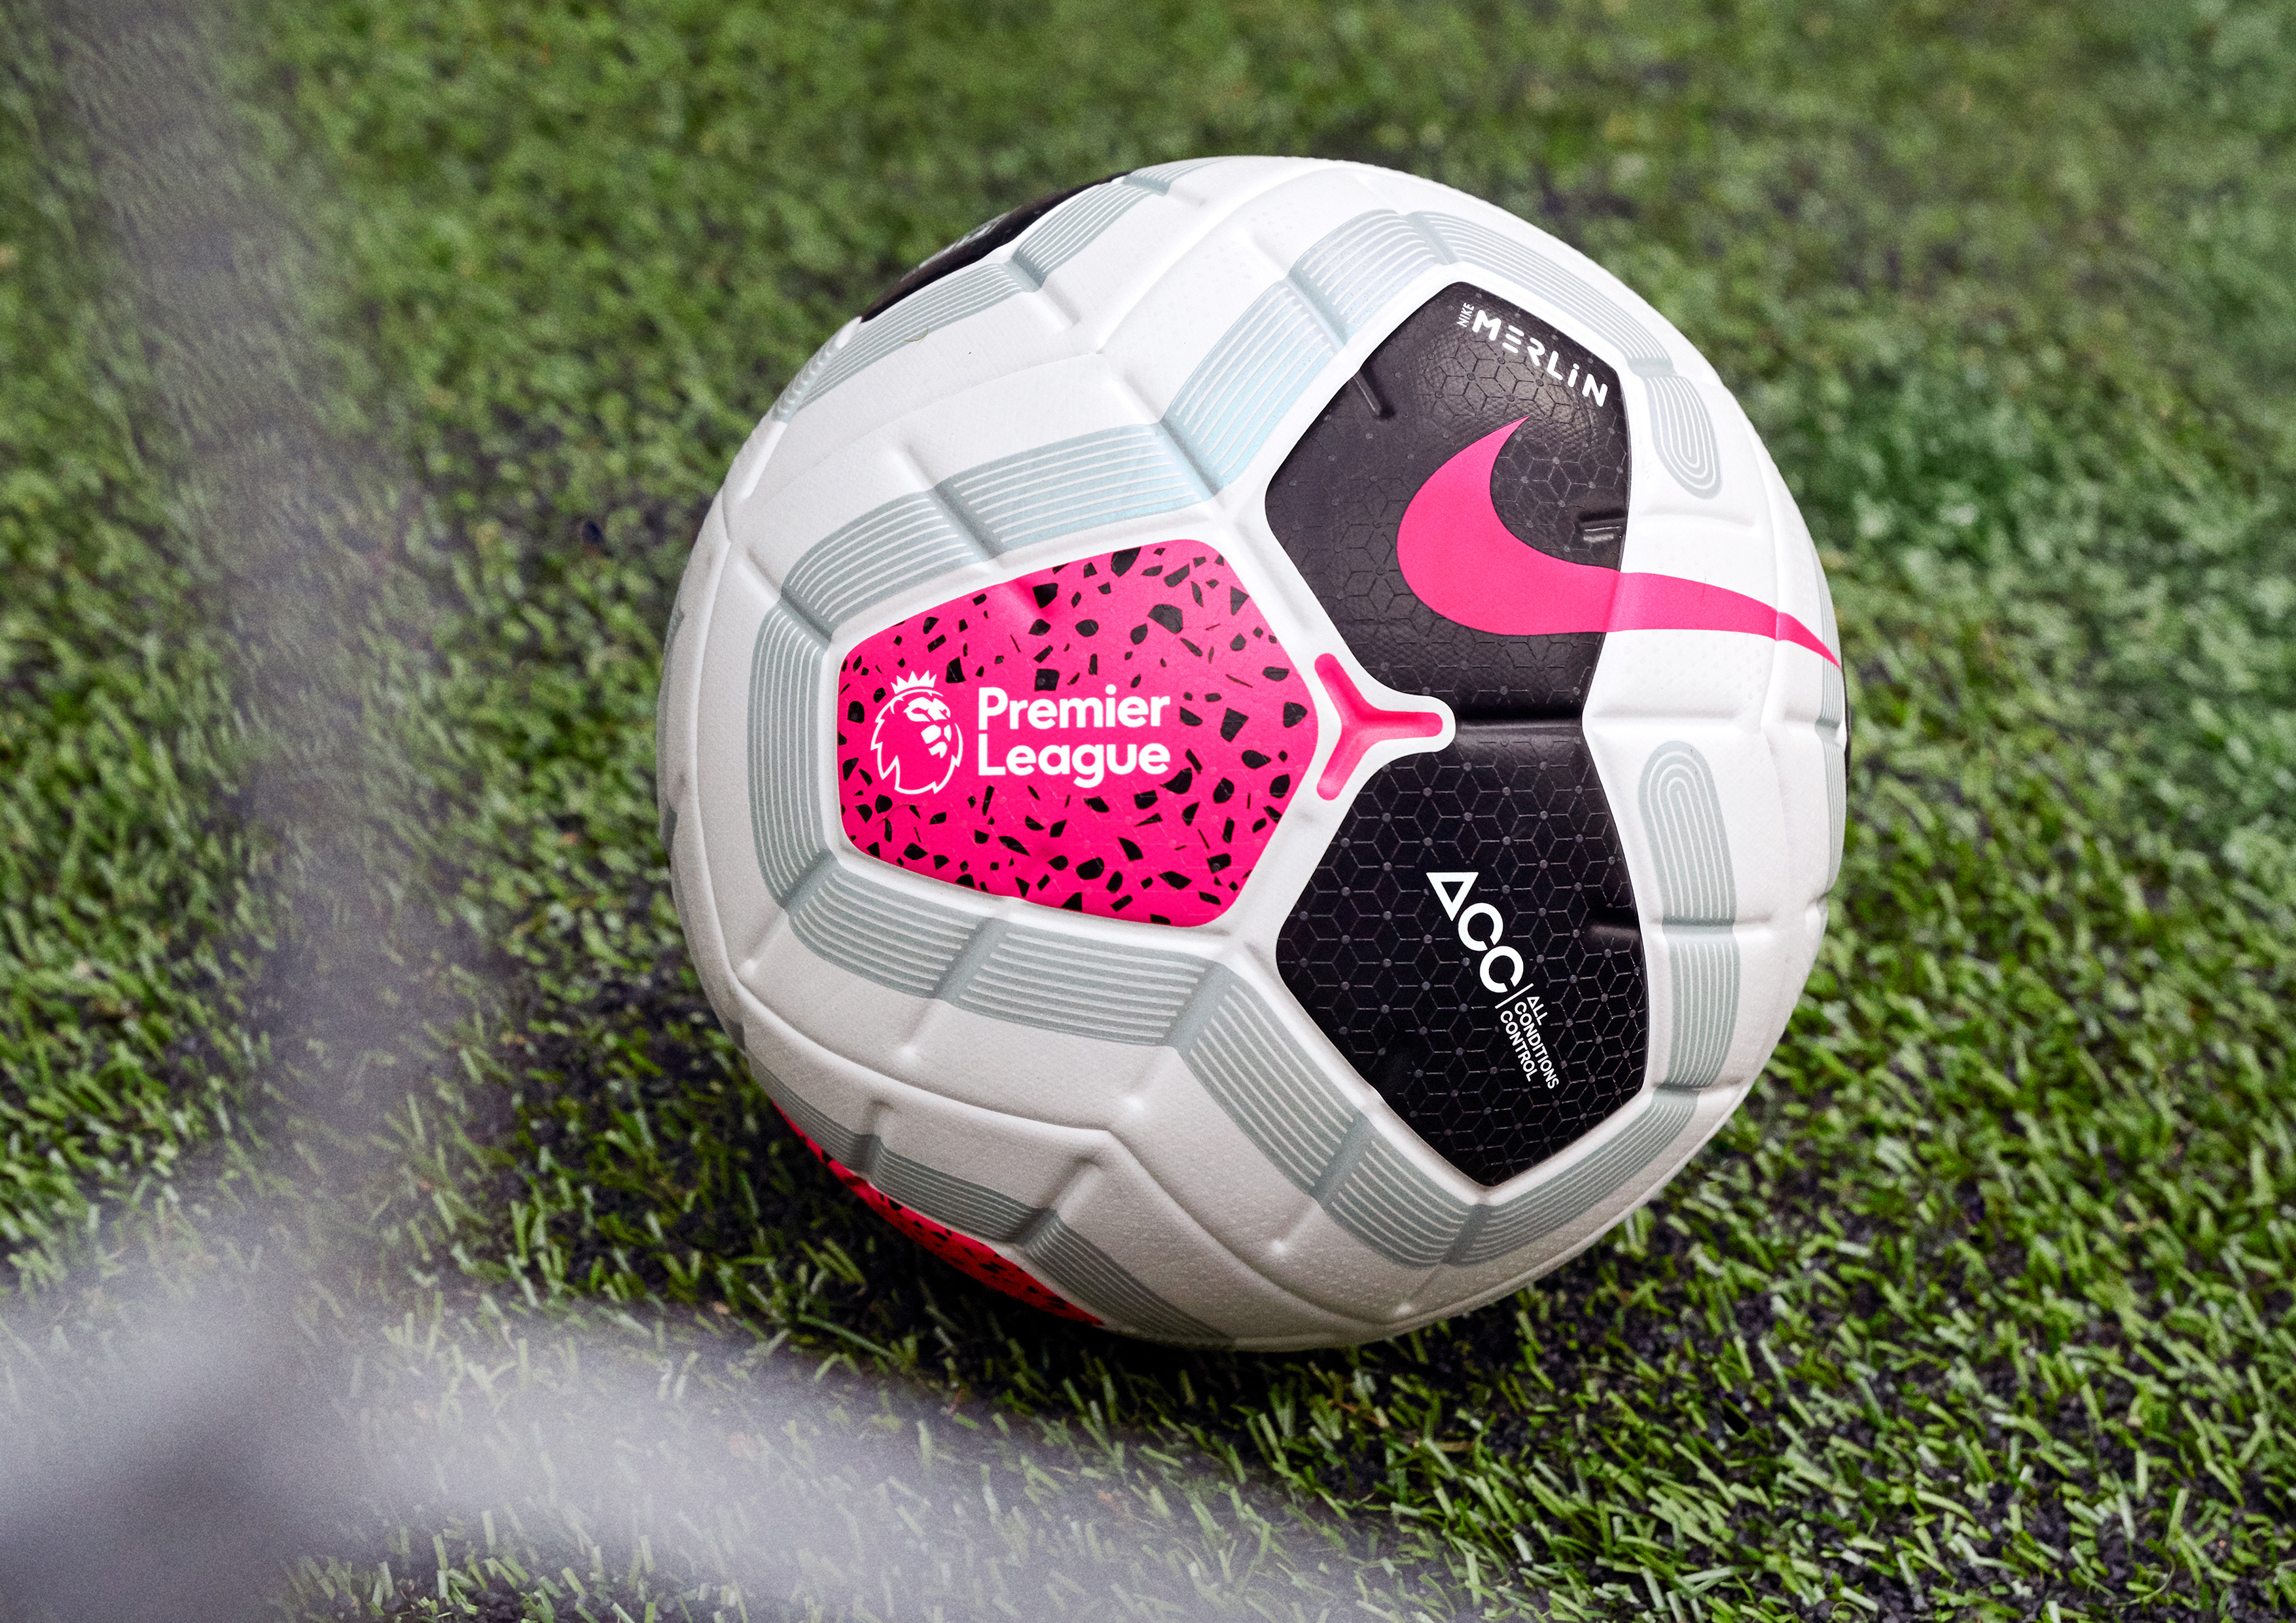 New Nike Merlin Ball Made Only For The Premier League